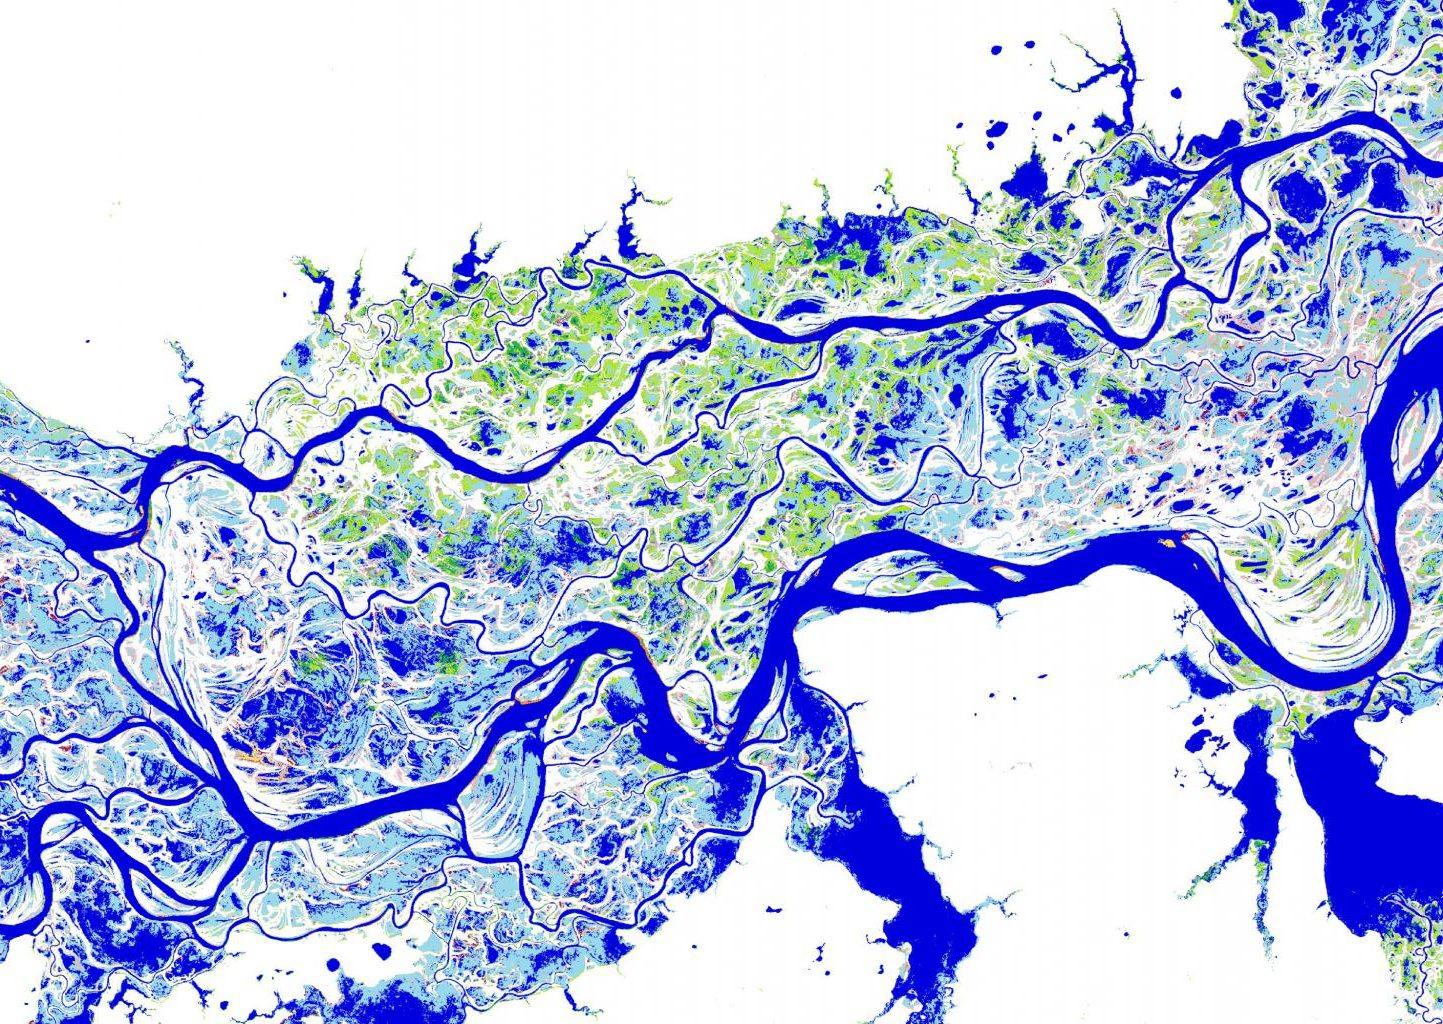 A map showing the distribution and change in surface water over a 32-year period. This particular map shows the River Ob in Siberia, where dark blue colors are areas of permanent water, lighter blue colors are areas of seasonal water, green colors represent new areas of seasonal water, and pink colors represent areas of lost seasonal water. (Image: © EC-Joint Research Centre / Google, 2016)